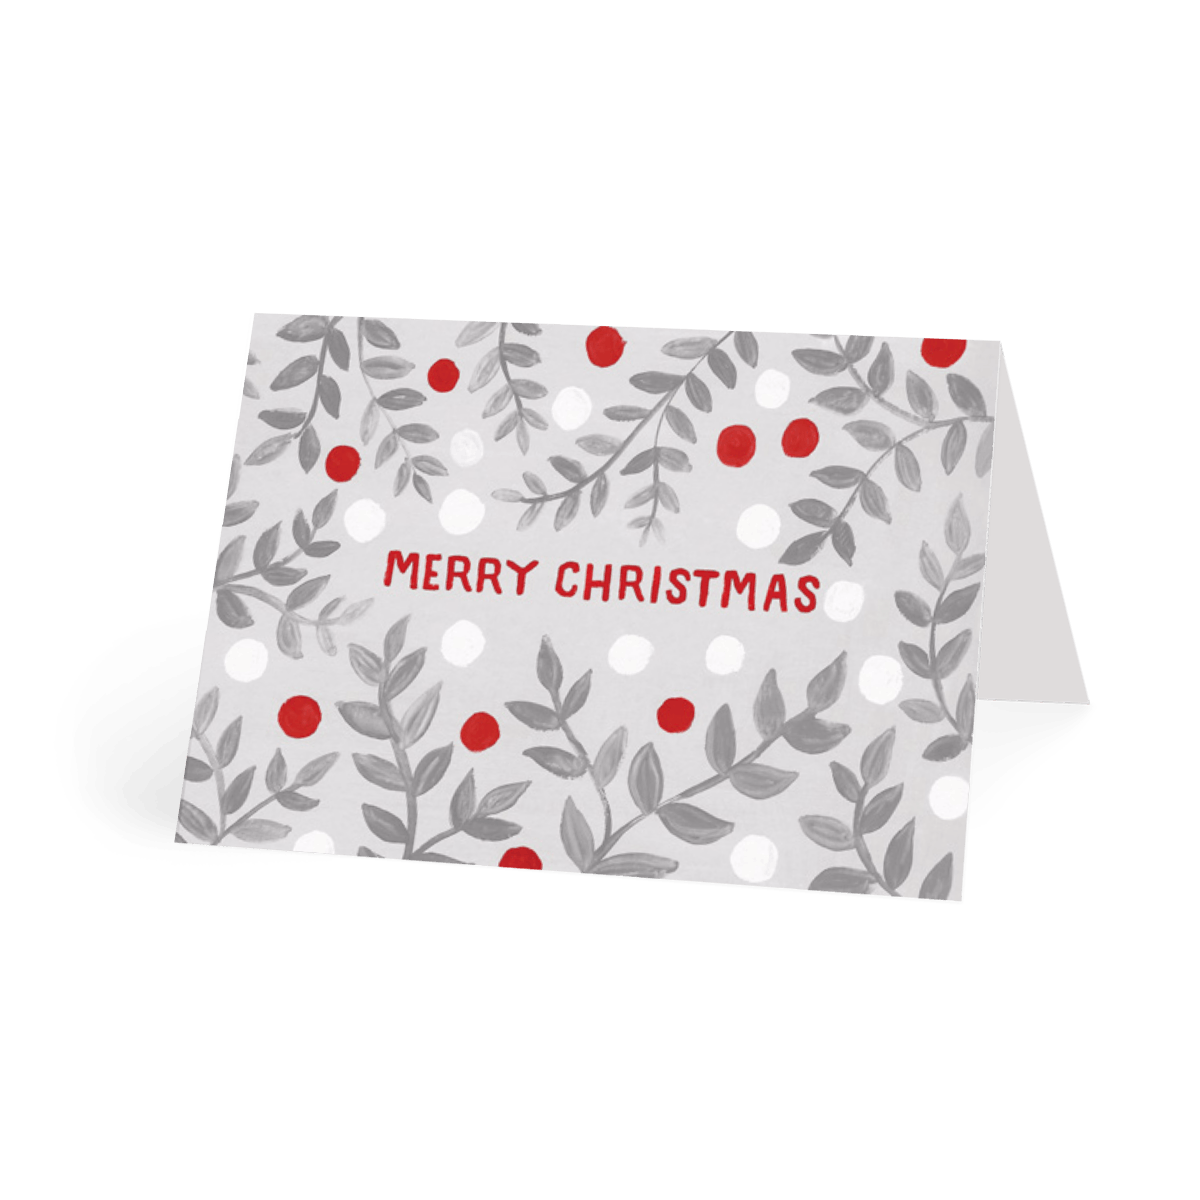 Https%3a%2f%2fwww.papier.com%2fproduct image%2f30161%2f14%2fchristmas red berries 7607 front 1570645044.png?ixlib=rb 1.1